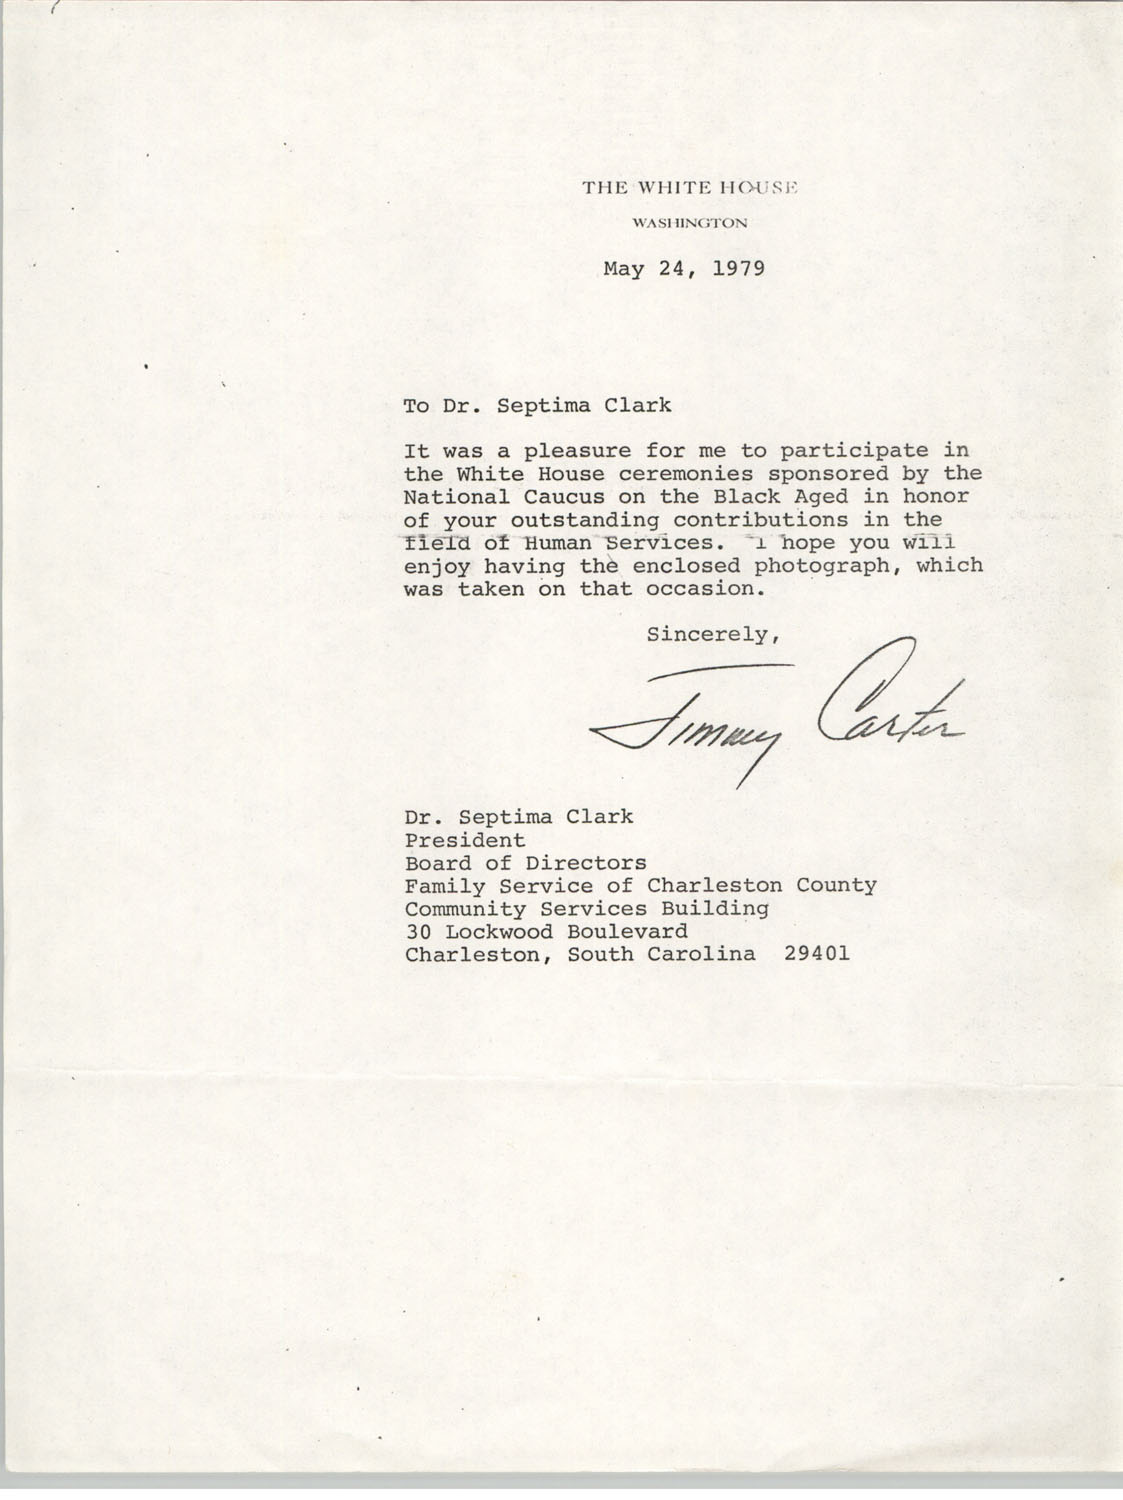 Letter from Jimmy Carter to Septima P. Clark, May 24, 1979